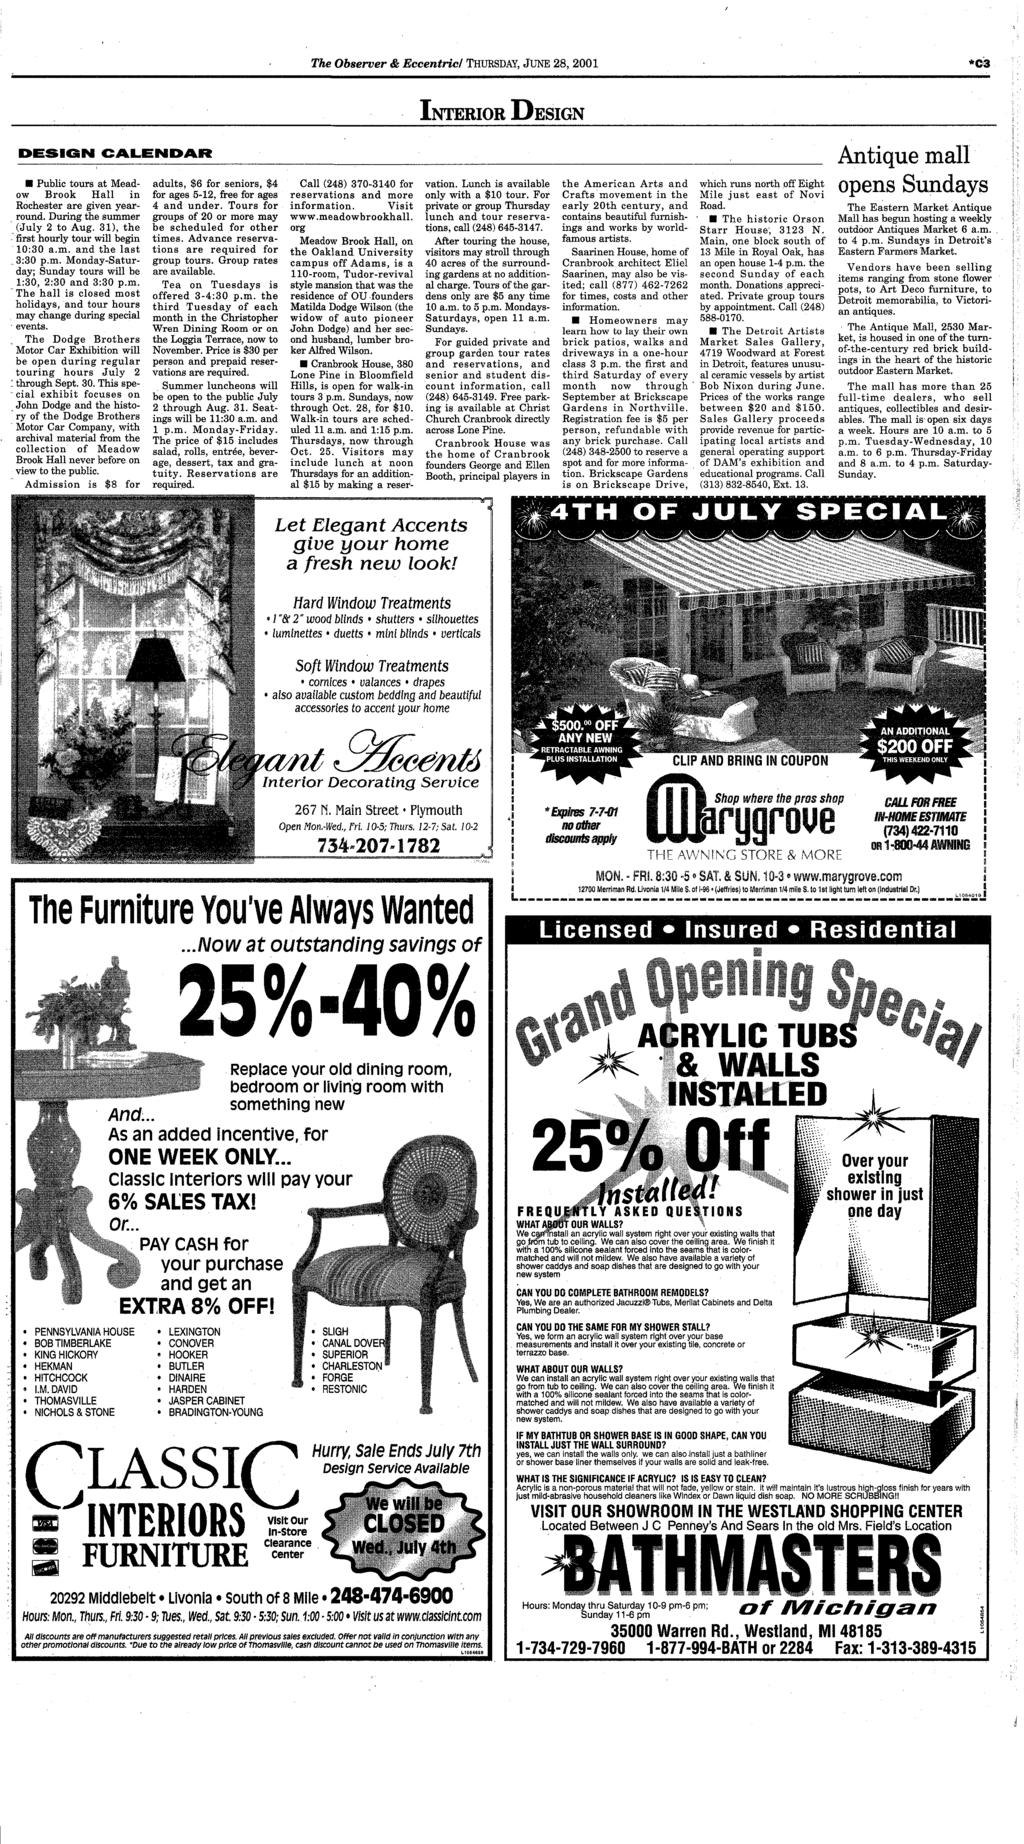 Canton dbsmrc your hometown newspaper serving canton for 26 years pdf the observer eccentric thursday june 28 2001 c3 in terior design fandeluxe Gallery